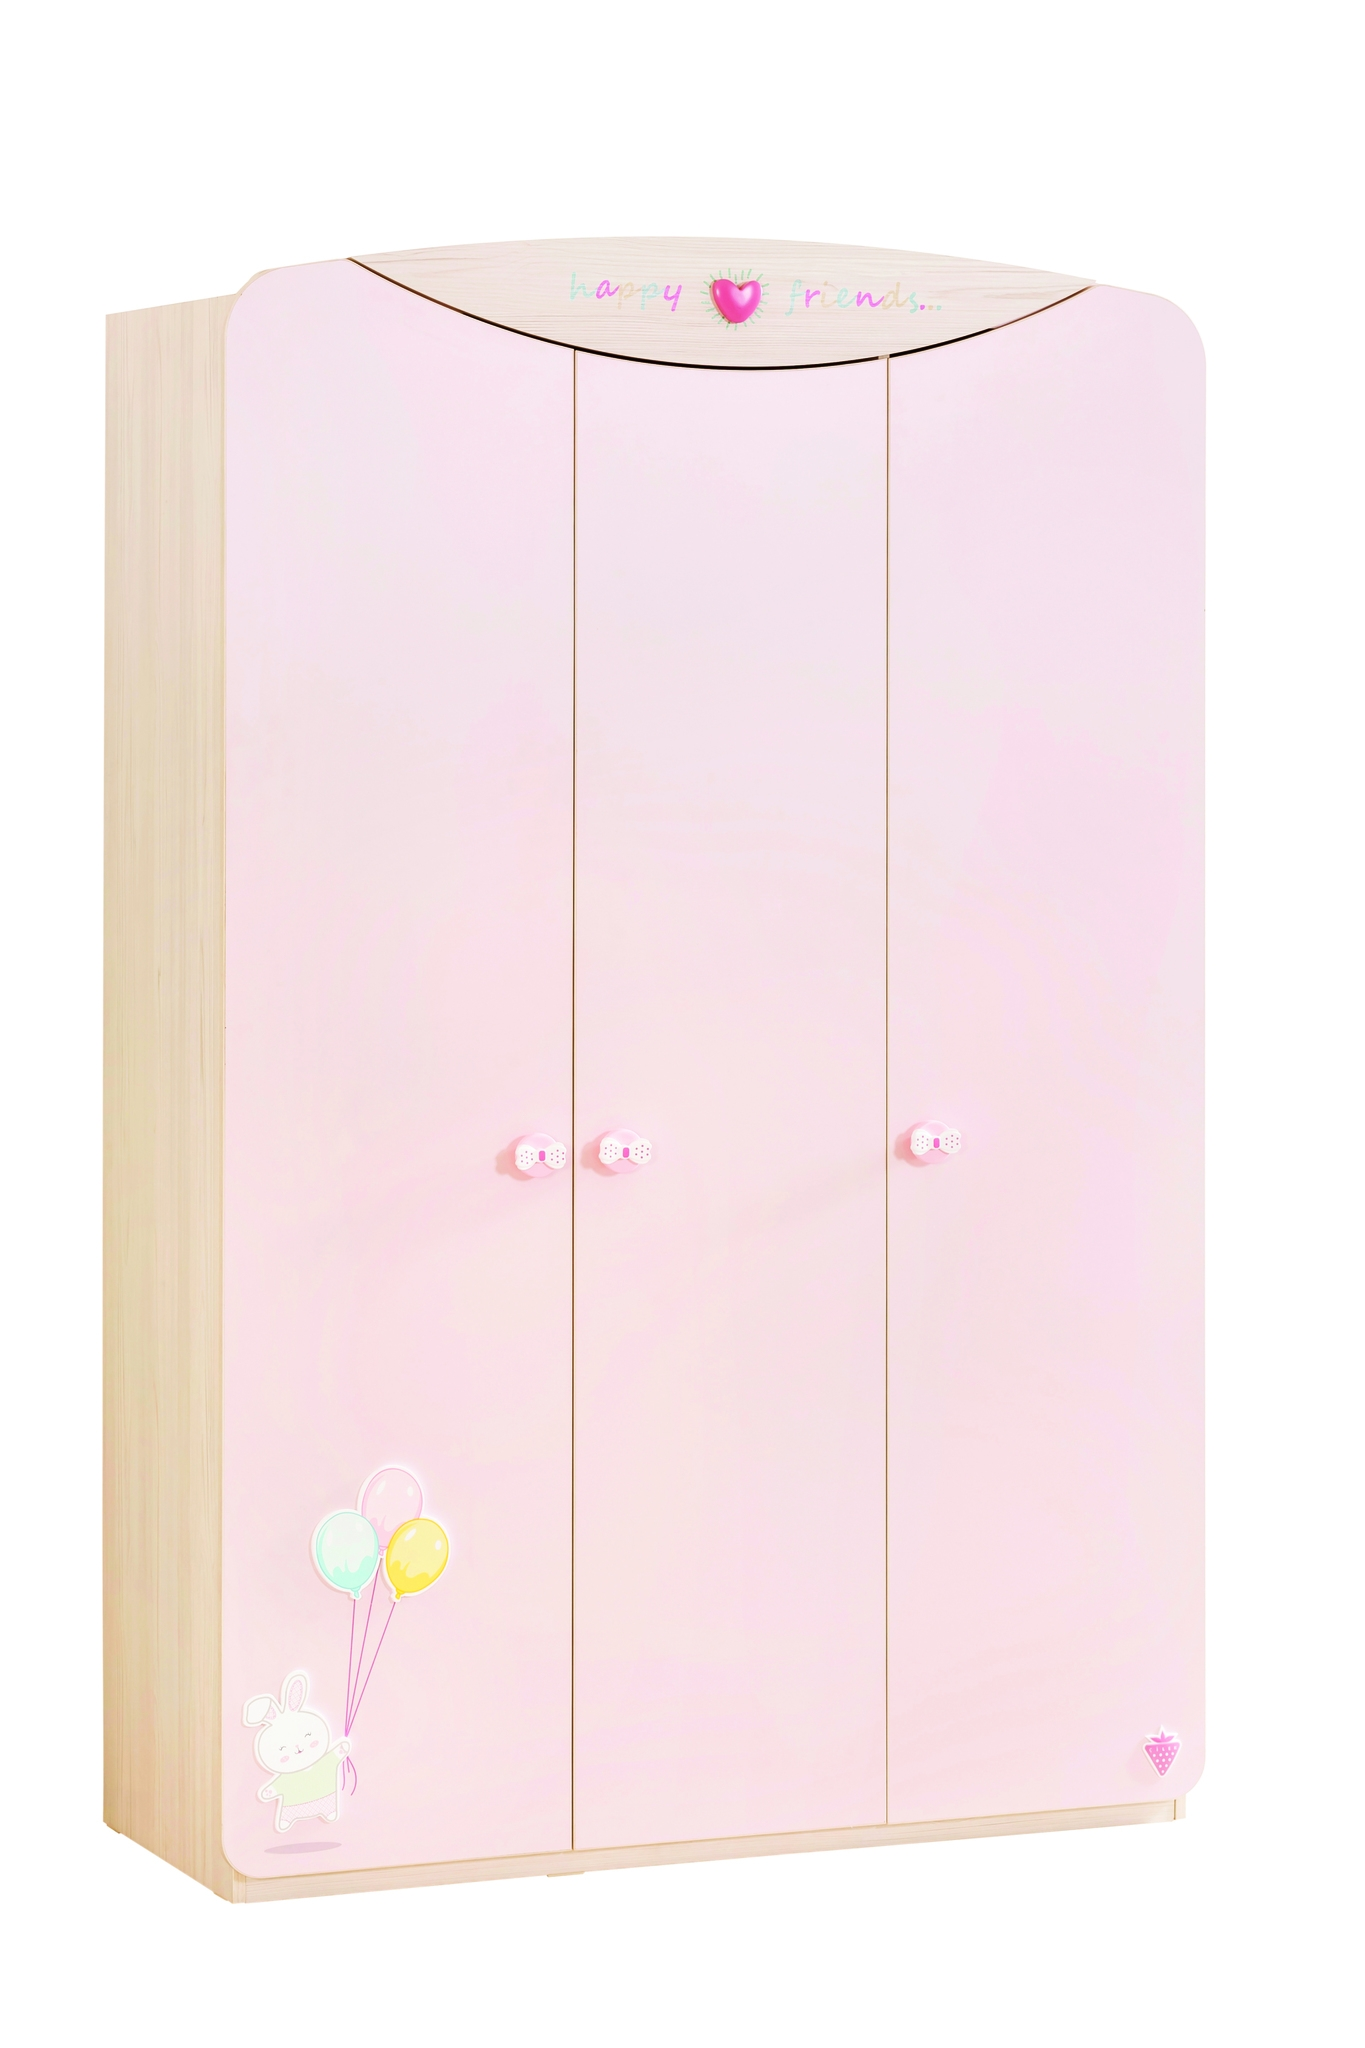 Dulap din pal cu 3 usi, pentru bebe Baby Girl Light Pink / Nature, l133xA55xH201 cm imagine